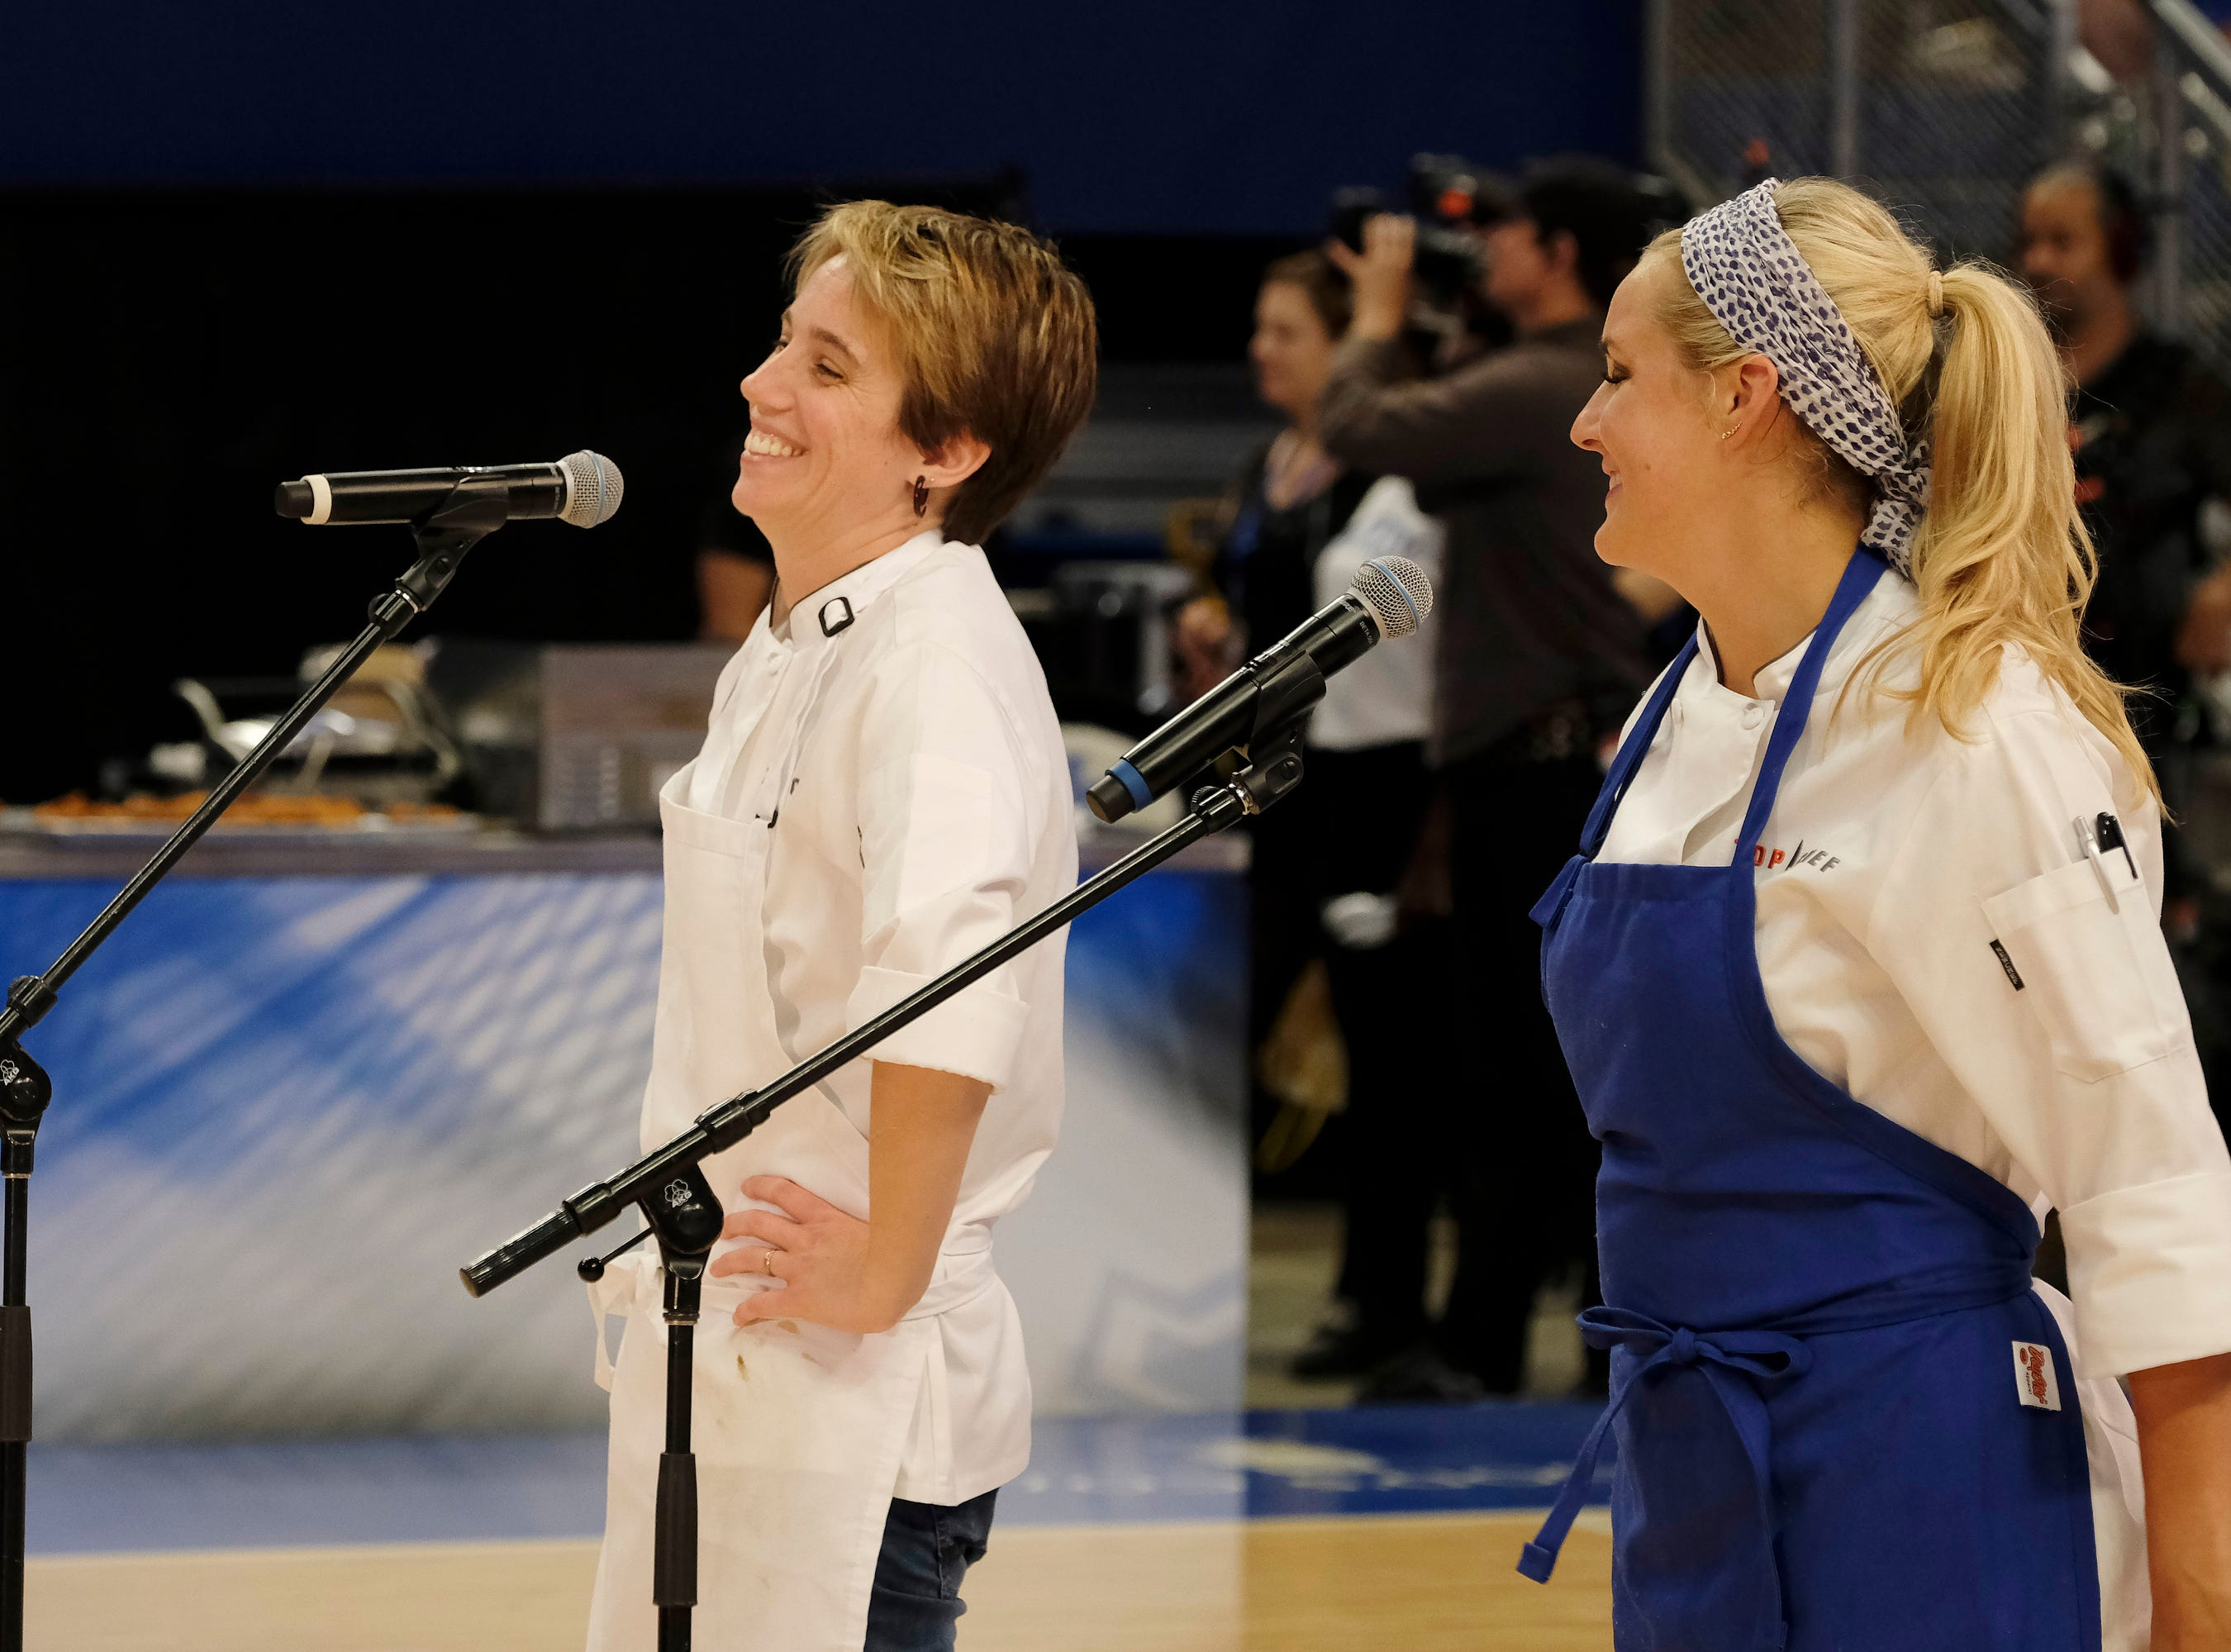 (From left to right): Contestants Adrienne Wright and Kelsey Barnard on episode 10 of Bravo's 'Top Chef: Kentucky' season.